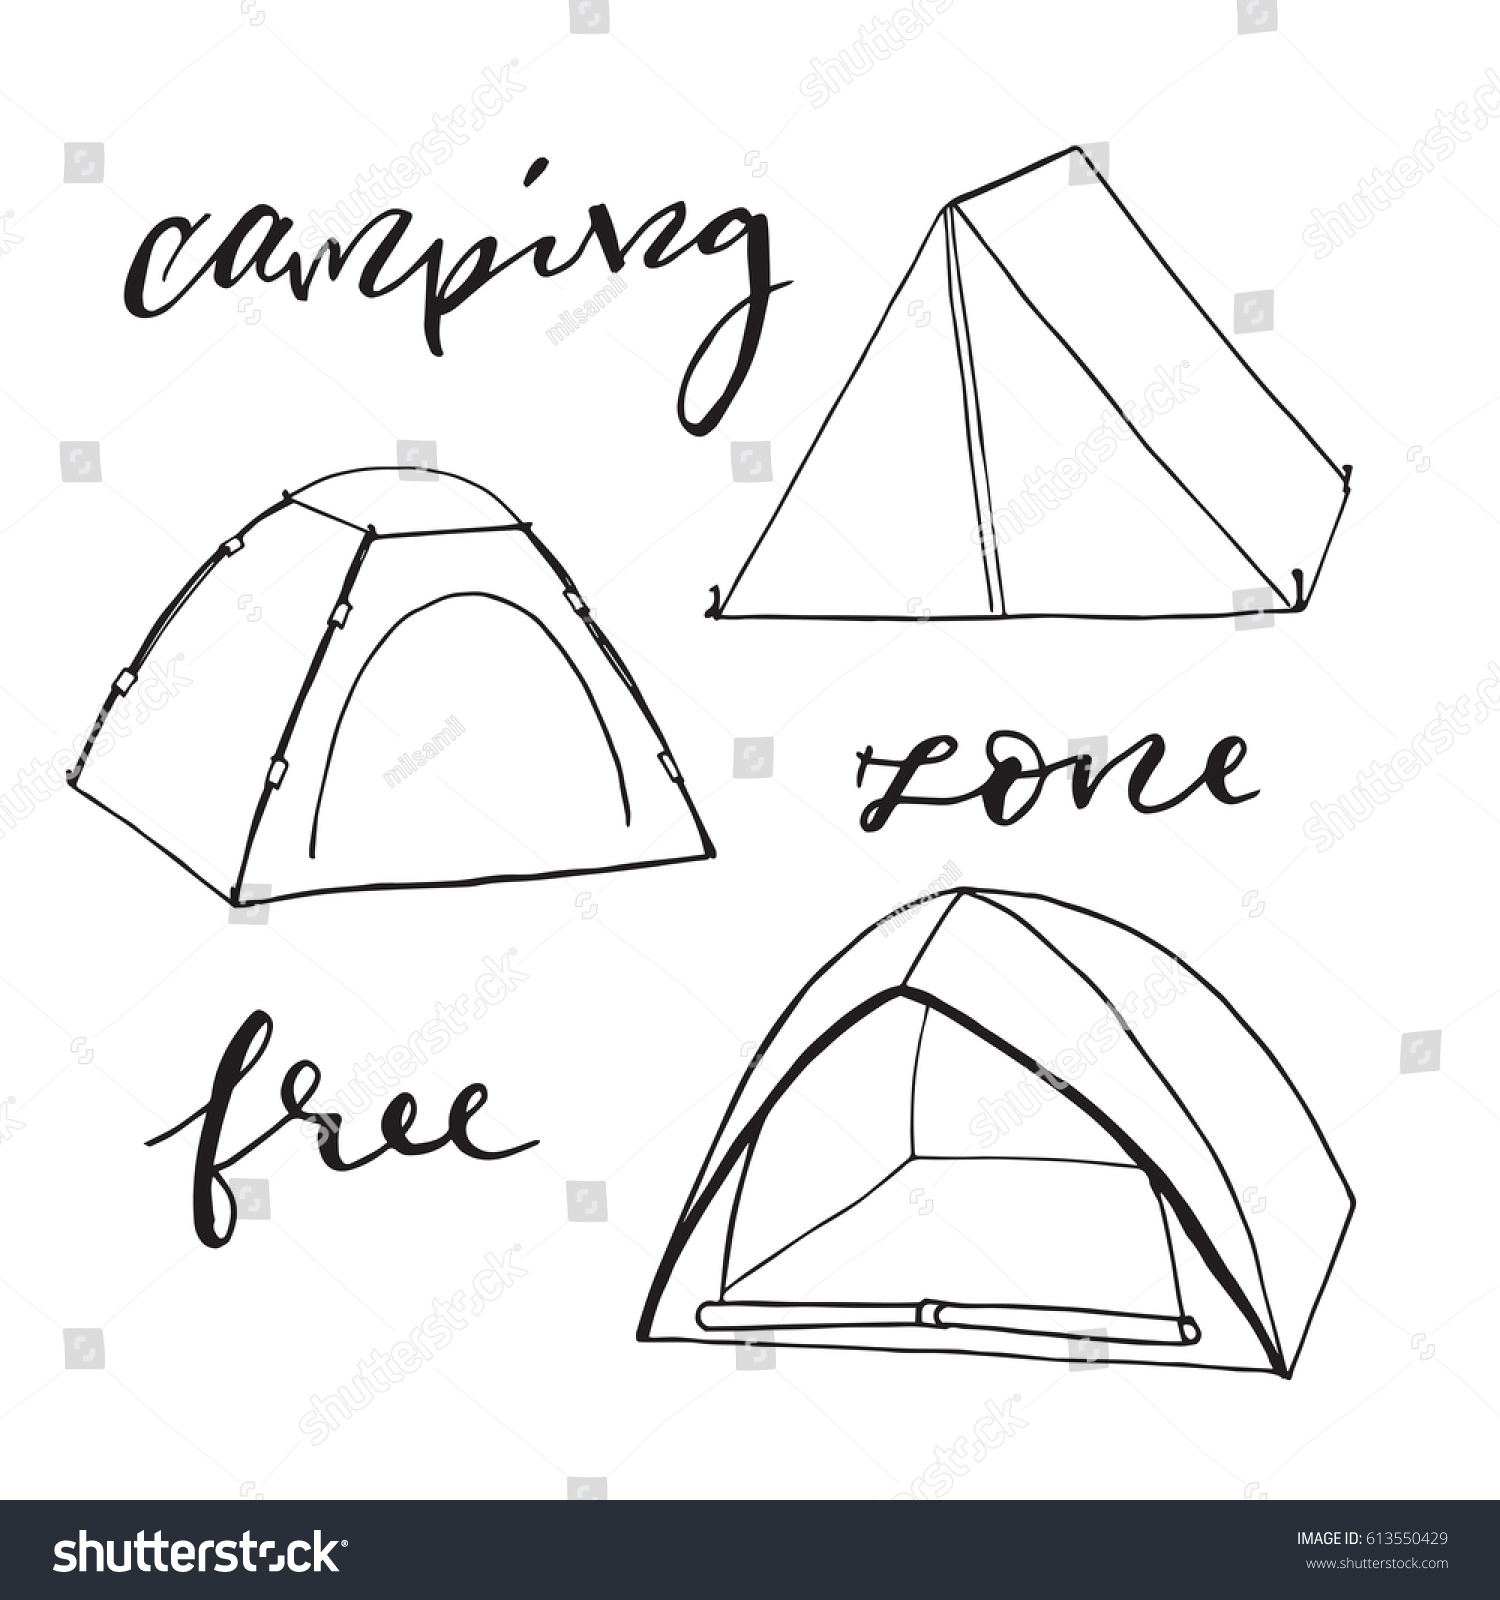 Tents Sketch Element Camping Zone Free Hand Drawing Vector Illustration Hang Writing